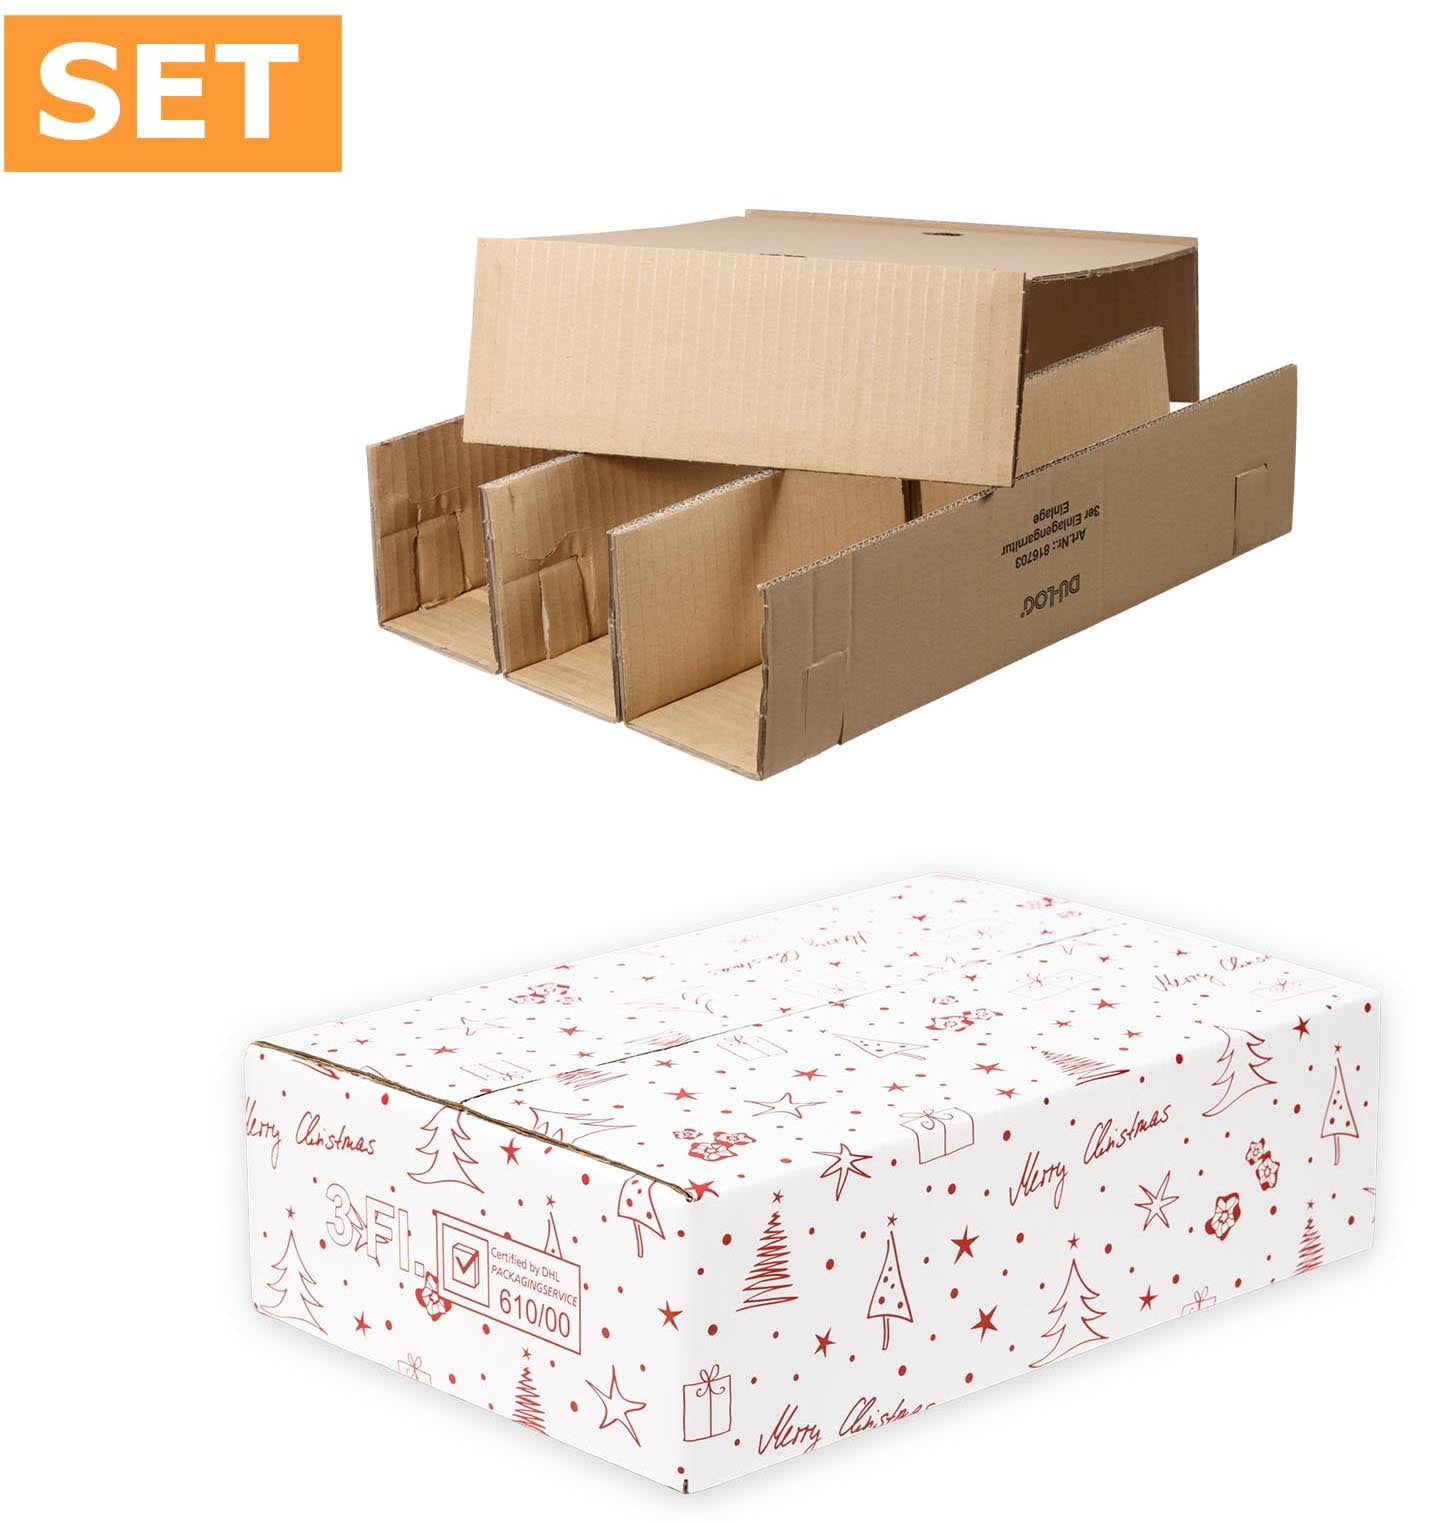 50 x 3 bottles box DU-LOG, size 400x280x110mm